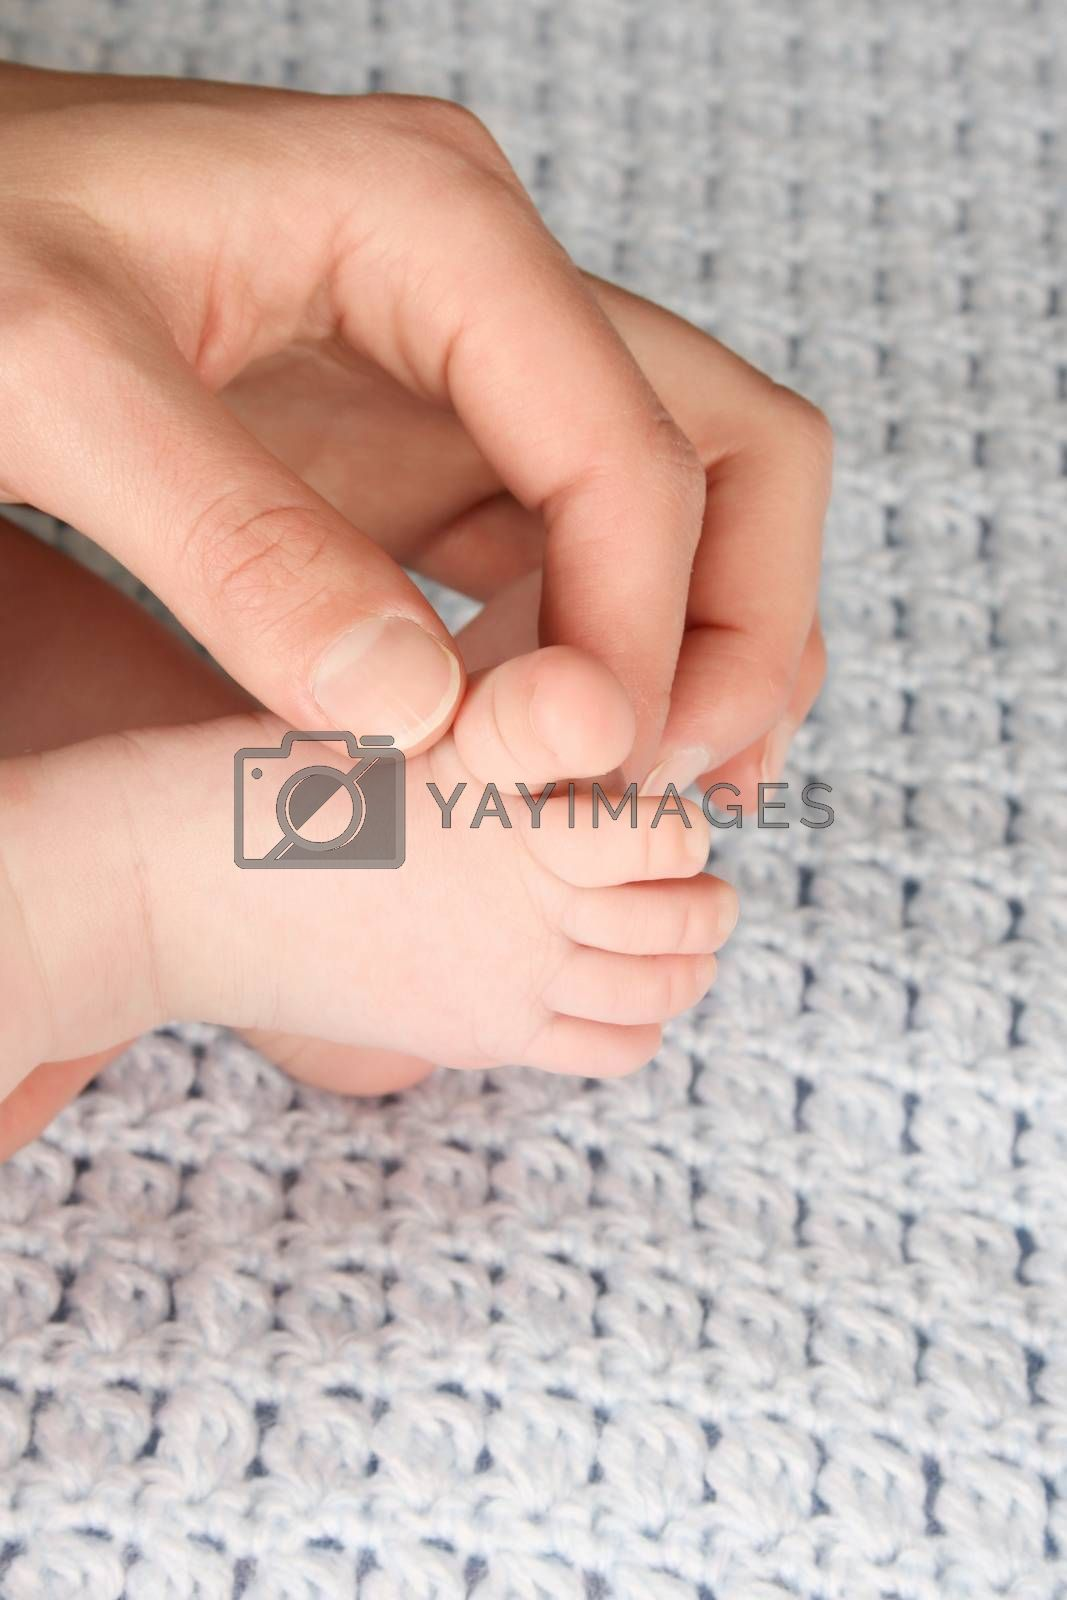 Hand of a baby in his mothers hand